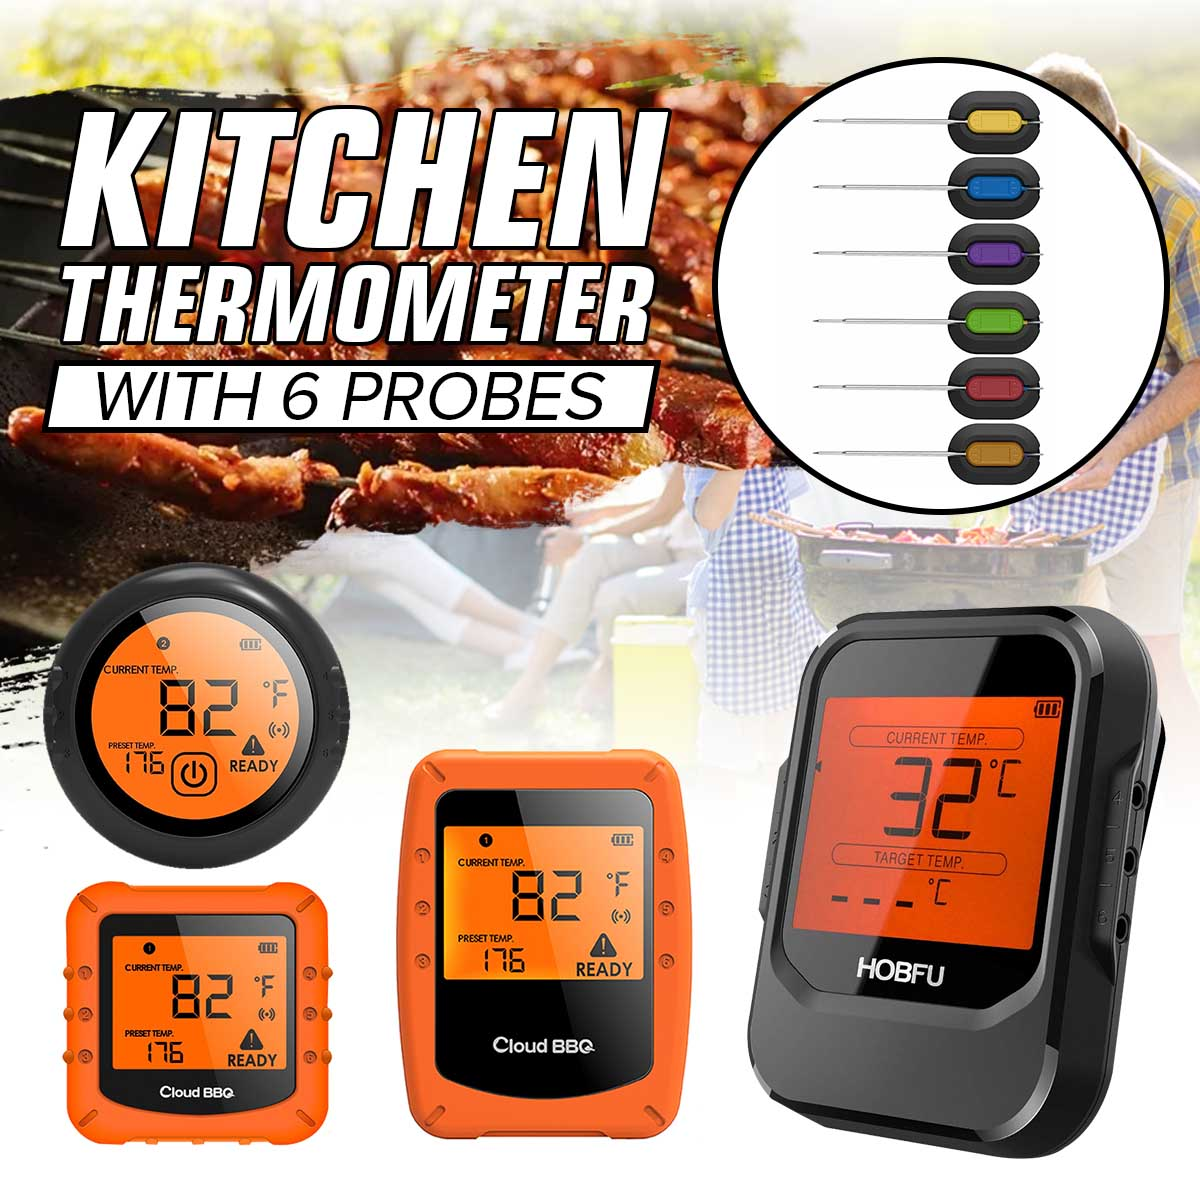 6 Probes Wireless Meat Thermometer for Grilling Digital Cooking BBQ Bluetooth